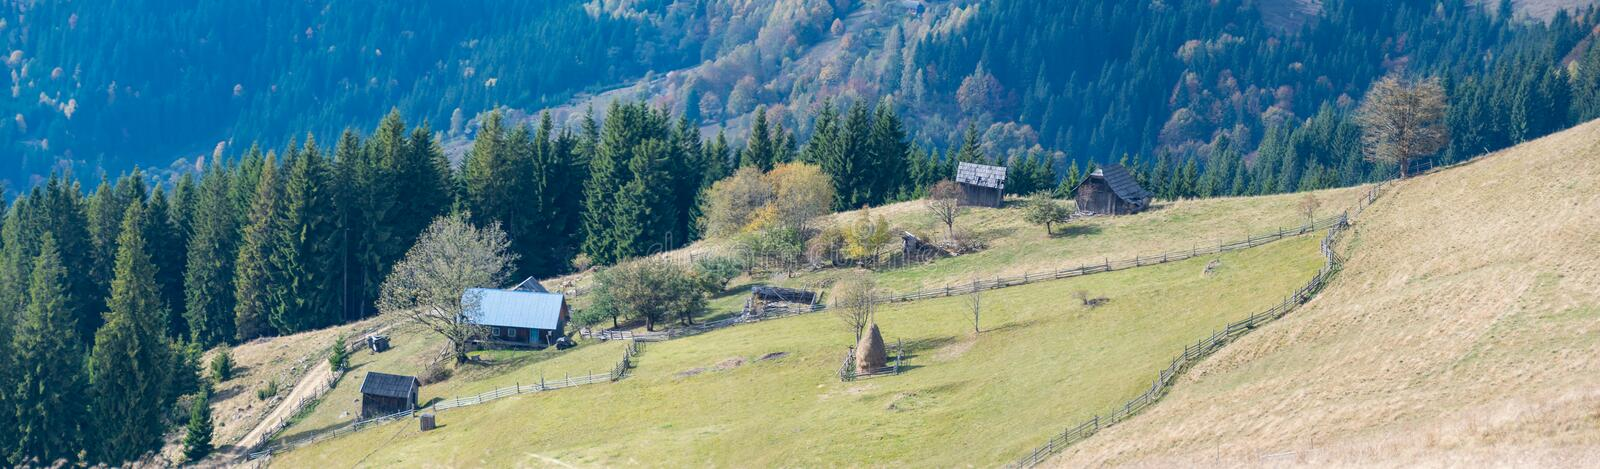 Panorama of country farm in the mountains of Ukraine royalty free stock images